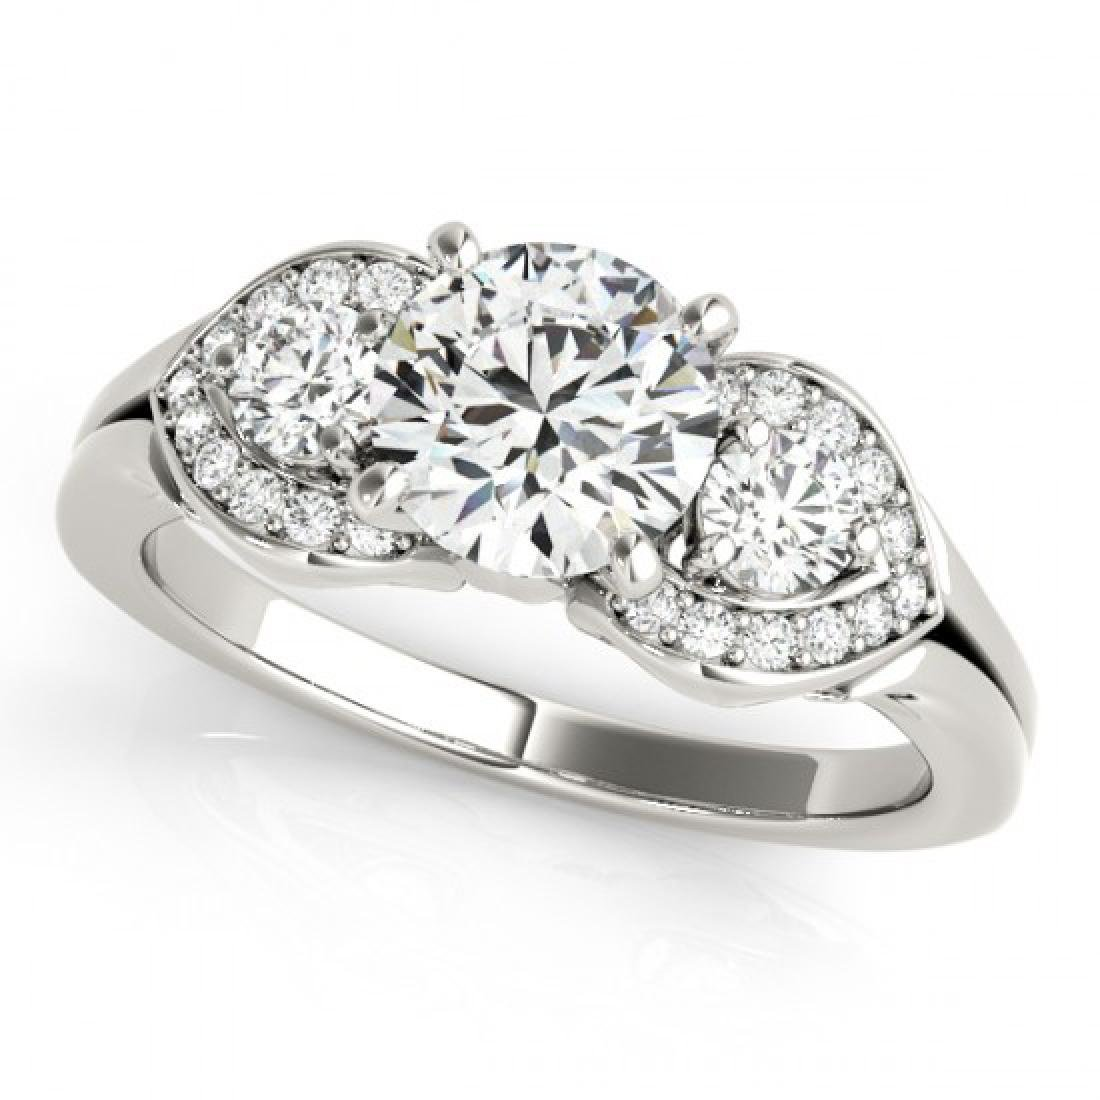 1.7 CTW Certified VS/SI Diamond 3 Stone Ring 14K White